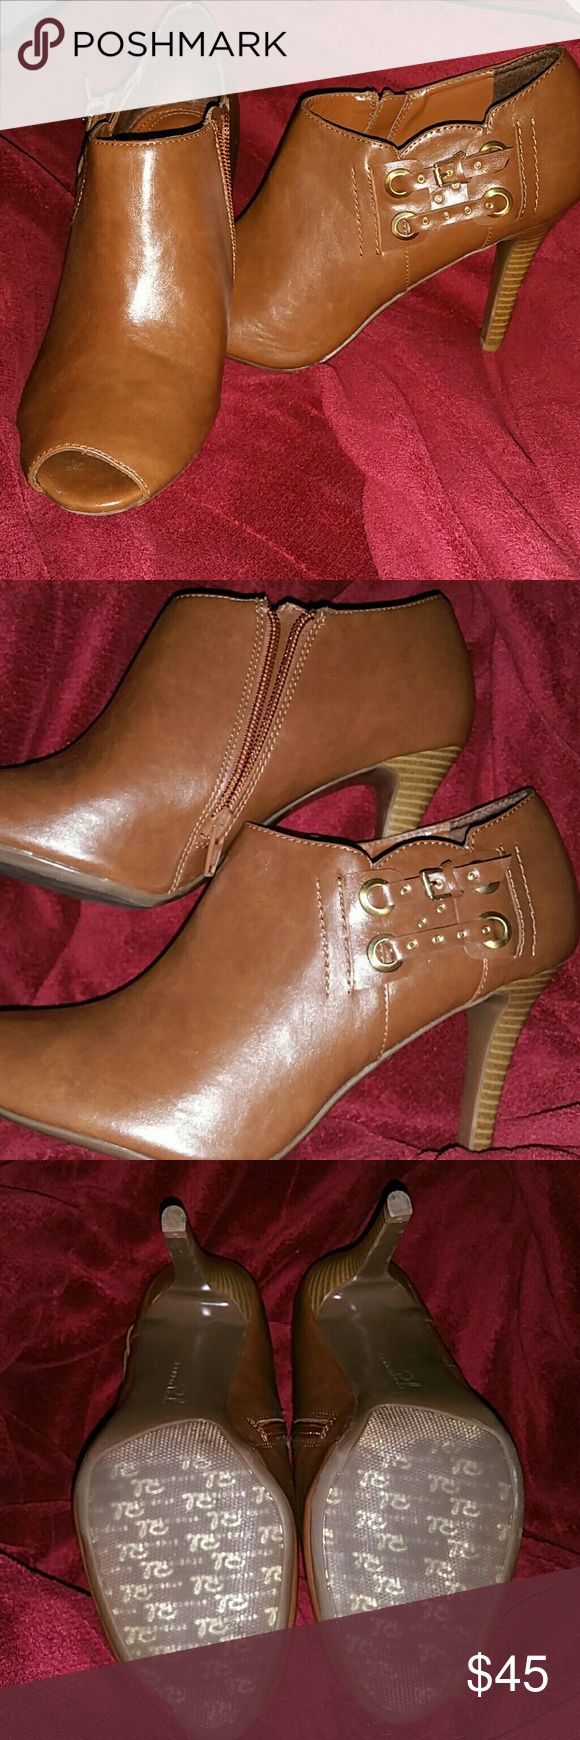 "Brown Peeptoe Booties, Size 10 📣📣📣PLEASE READ📣📣📣 🛍 Current price is FIRM. Discounts available when you bundle!  🛍 All items from smoke-free, pet-free home.  🛍 I do NOT do trades, please don't ask.   Previously loved heels. These are in amazing condition, only worn a handful of times. Heel is approximately 3.5-4"". Studio Paolo Shoes Ankle Boots & Booties"